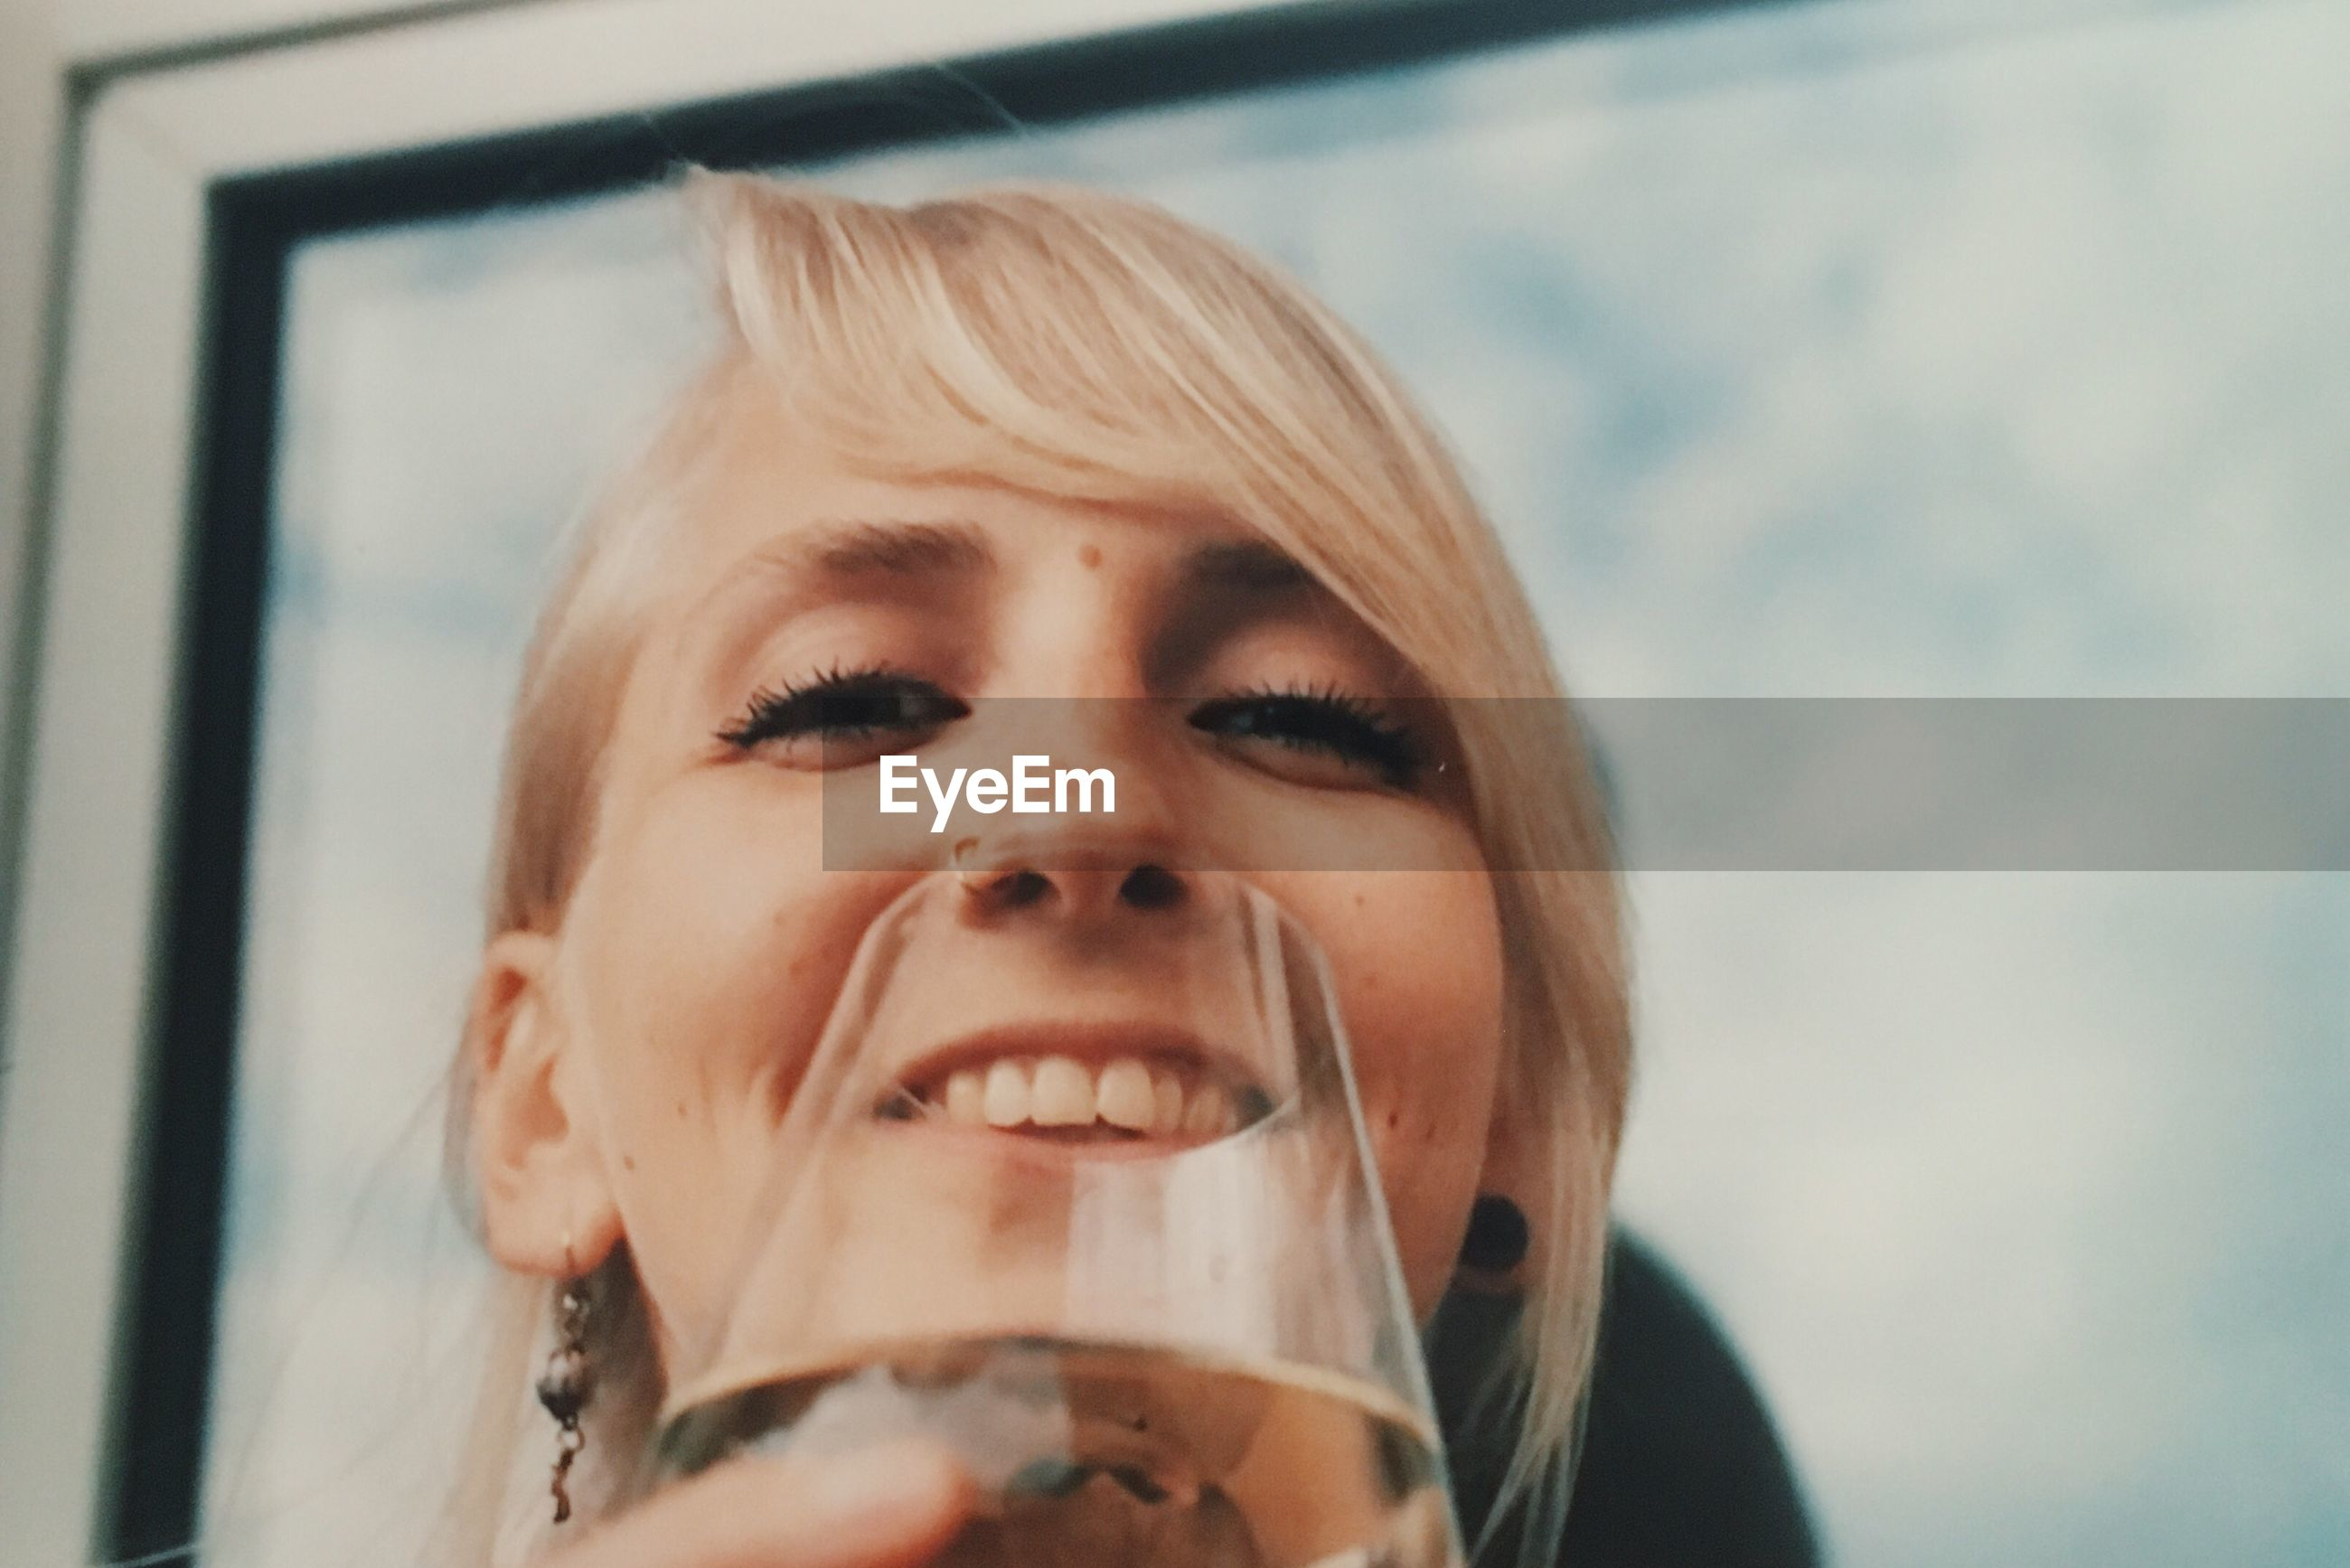 headshot, front view, one person, close-up, drink, refreshment, real people, day, drinking, food and drink, happiness, smiling, low angle view, alcohol, outdoors, lifestyles, young adult, people